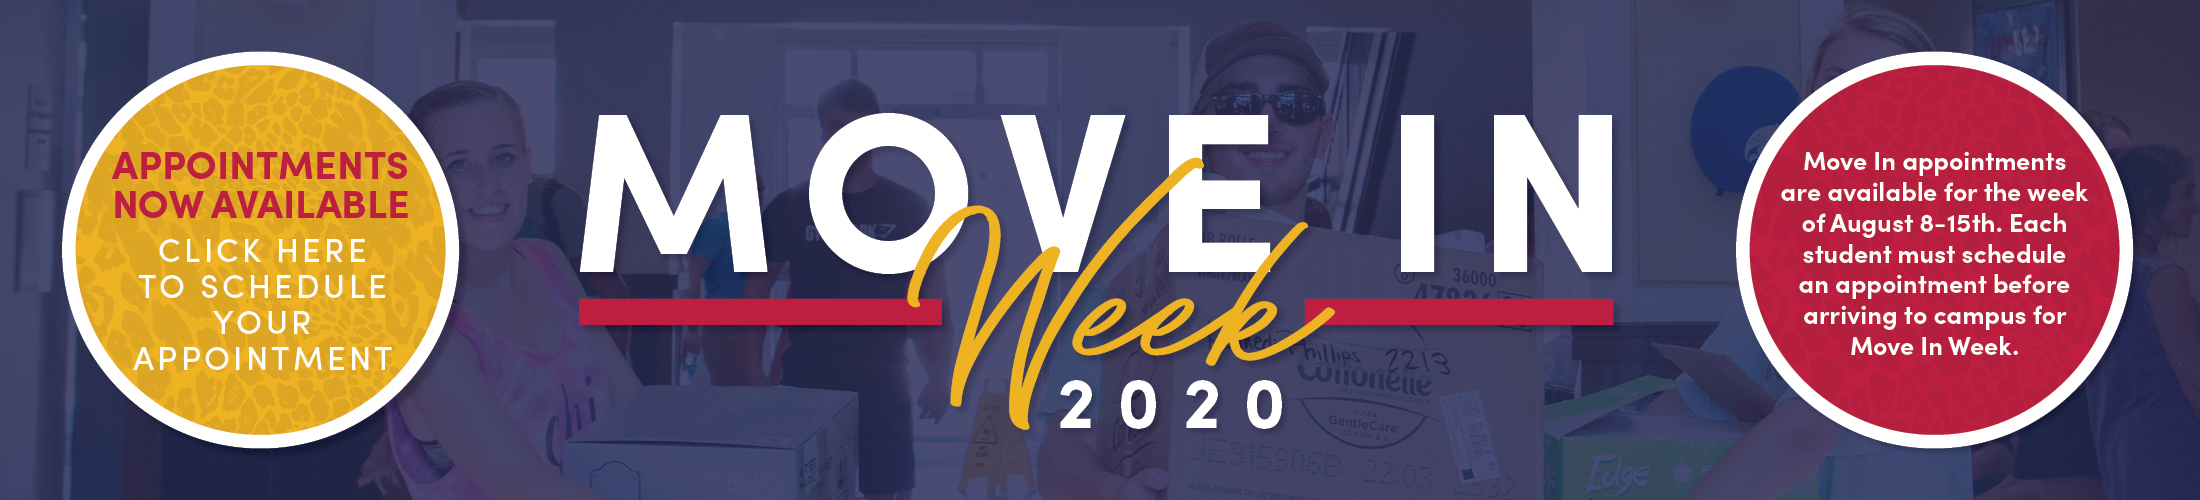 Move In Week 2020 - Appointments Now Available - Click Here to Schedule Your Appointment. Move-in appointments are available for the week of August 8-15th. Each student must schedule an appointment before arriving to campus for move in week